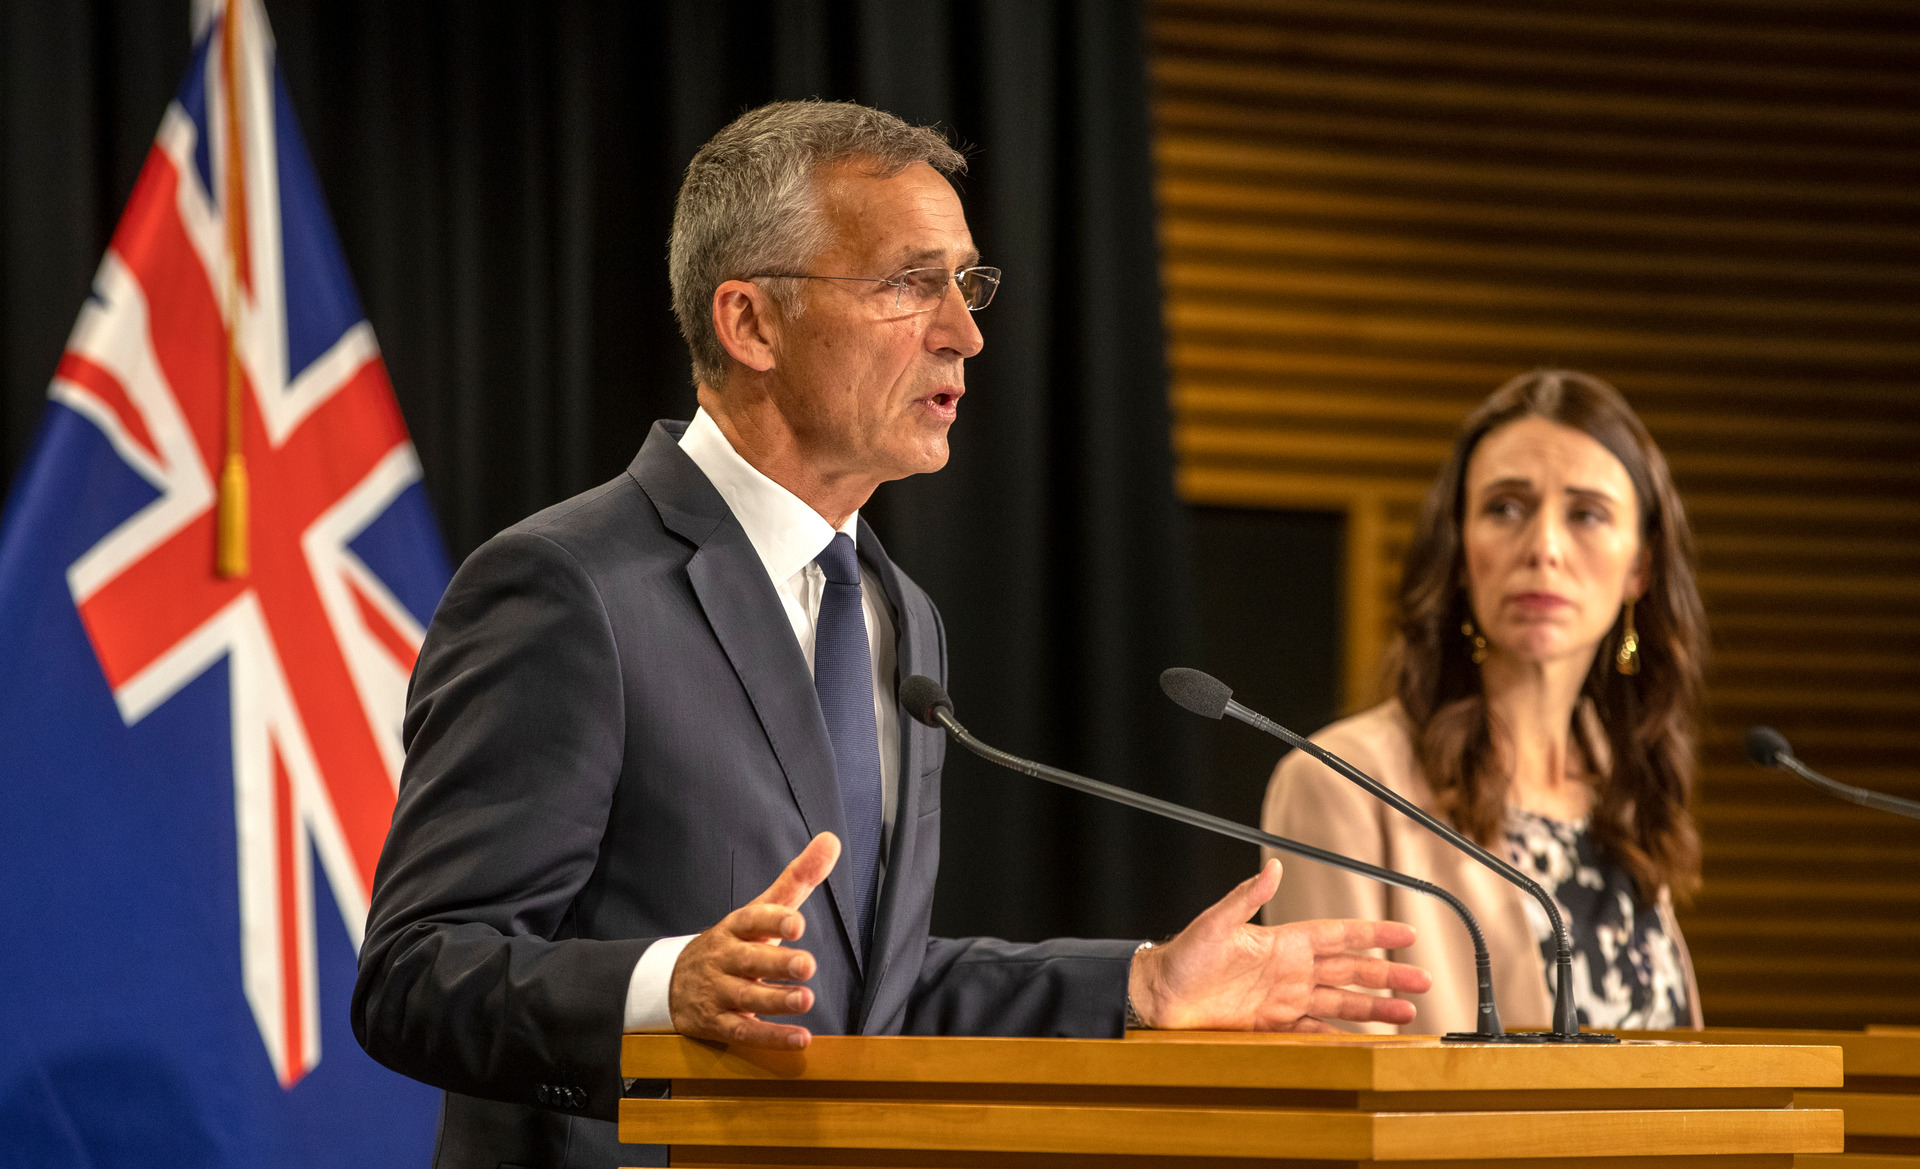 Nato boss Jens Stoltenberg addressed the Royal Commission investigating the March 15 shooting